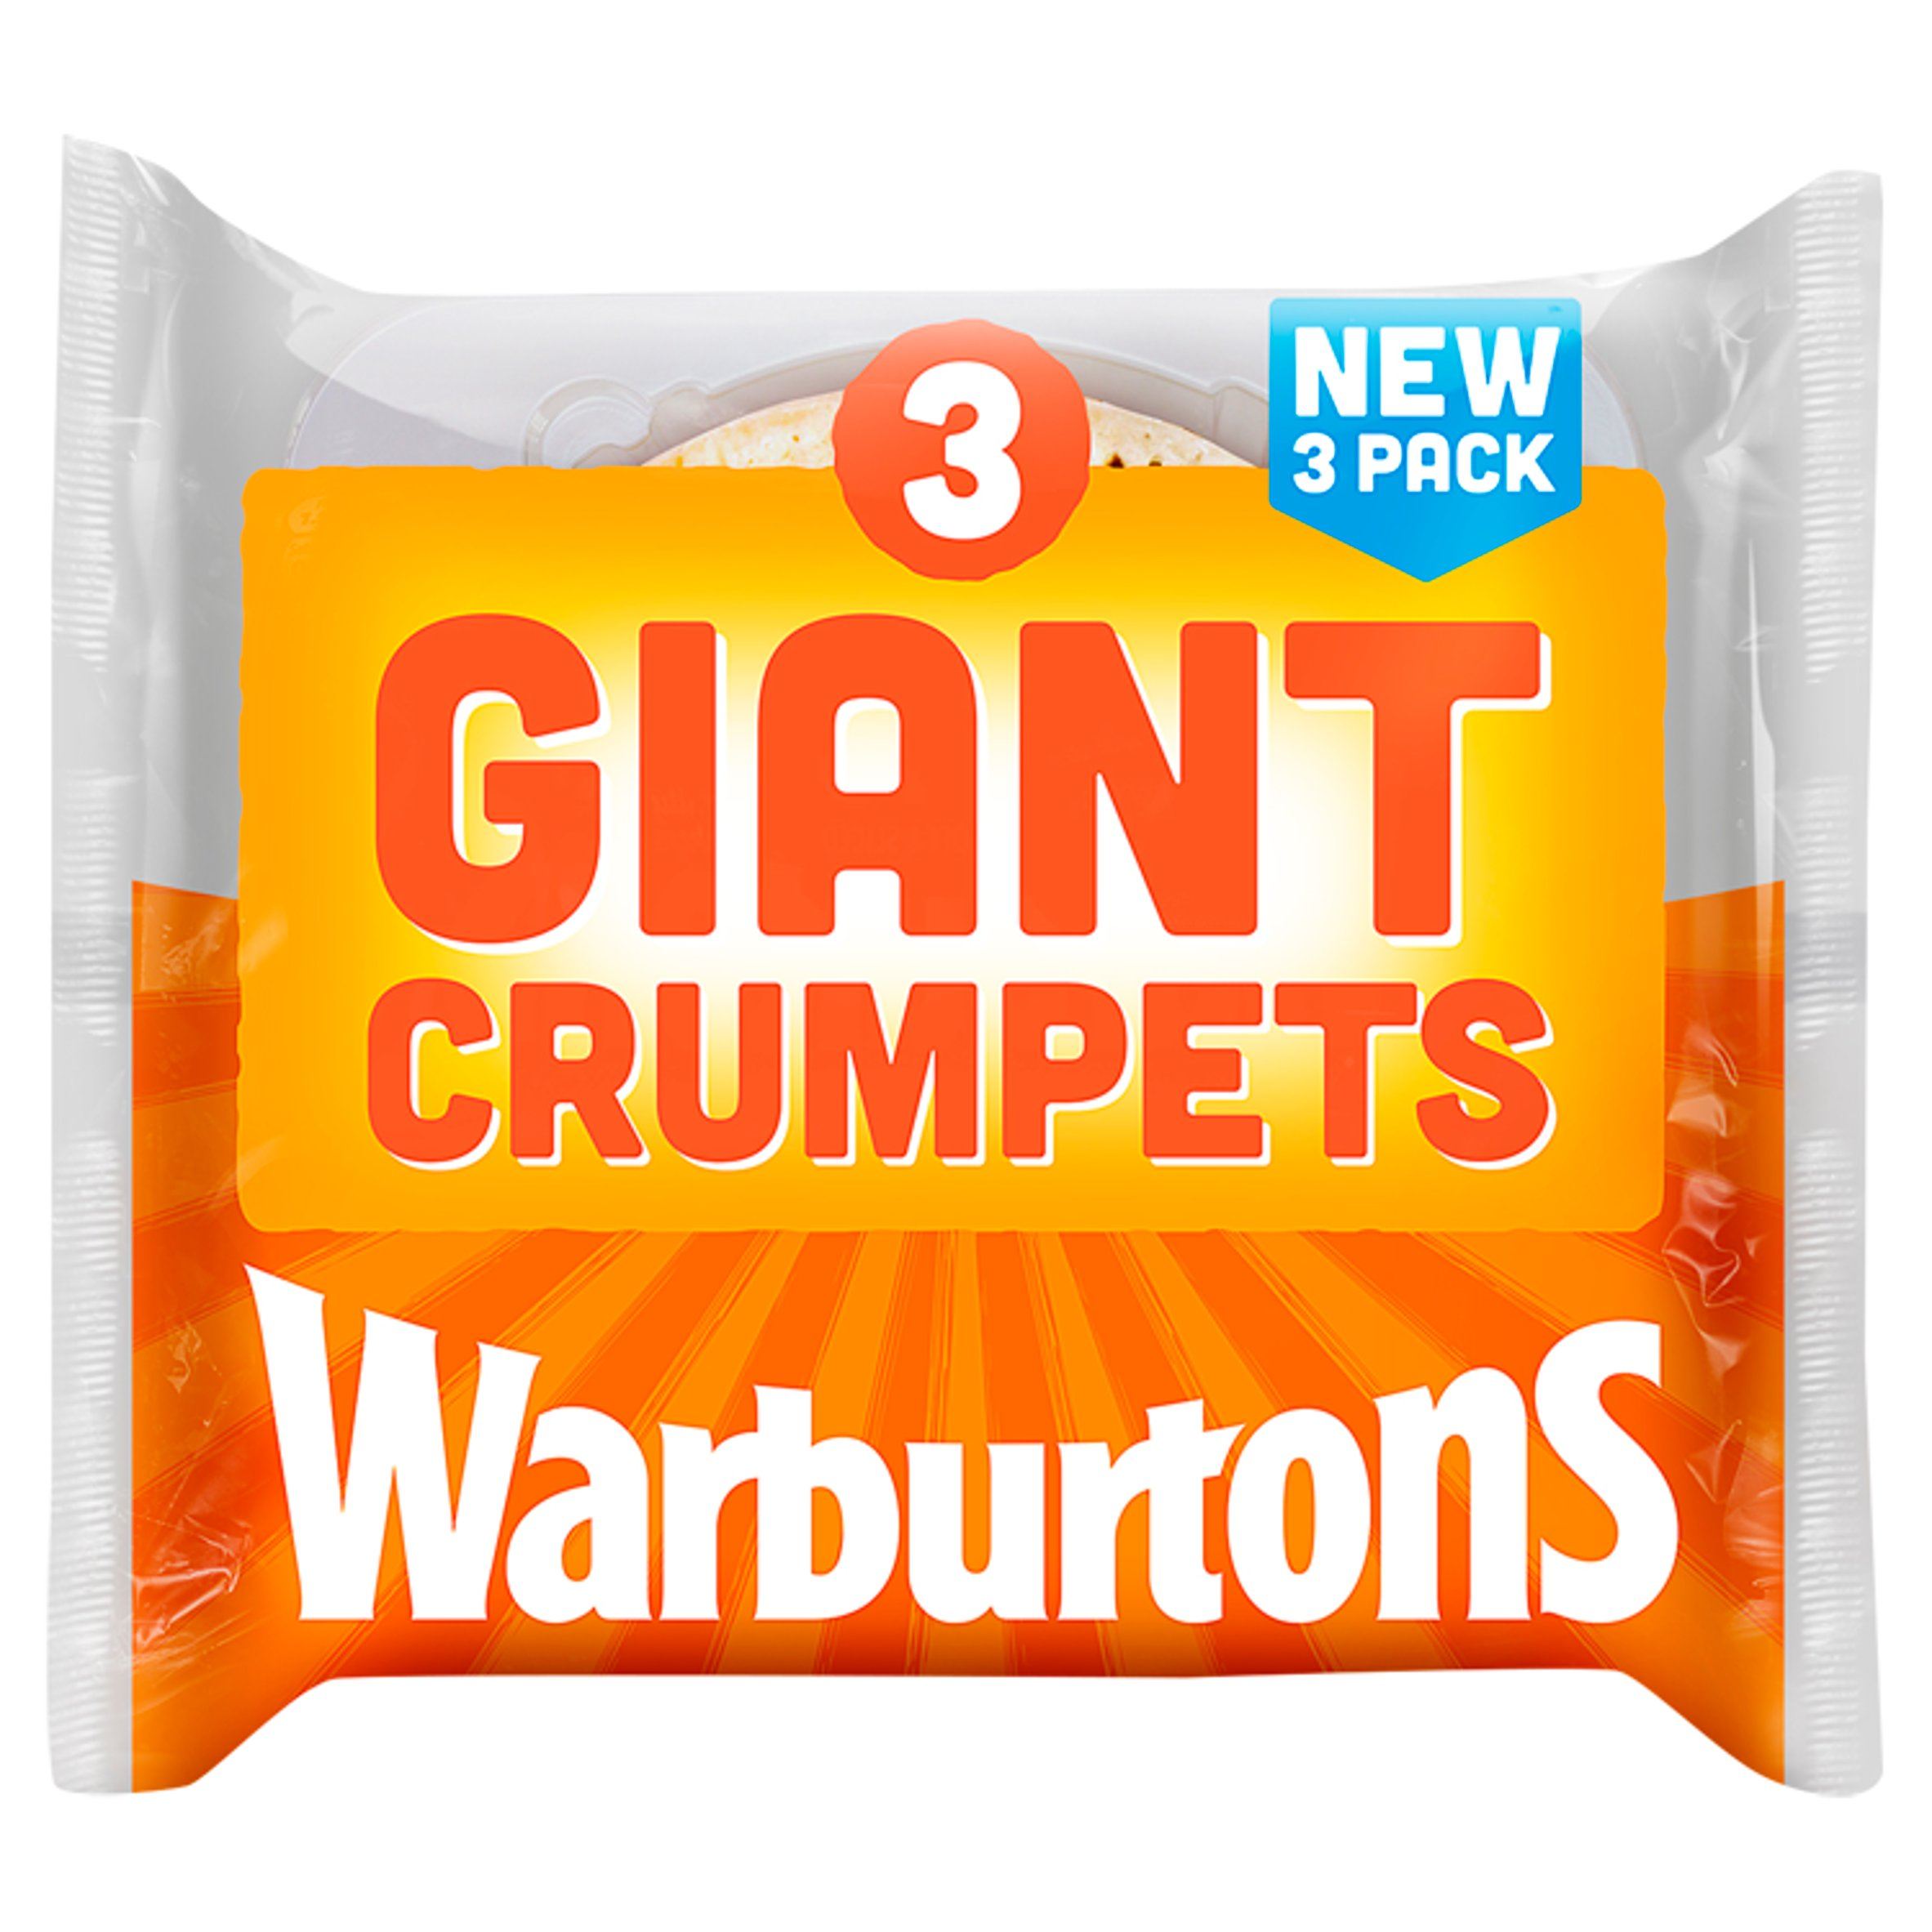 Warburtons Giant Crumpets 3 Pack